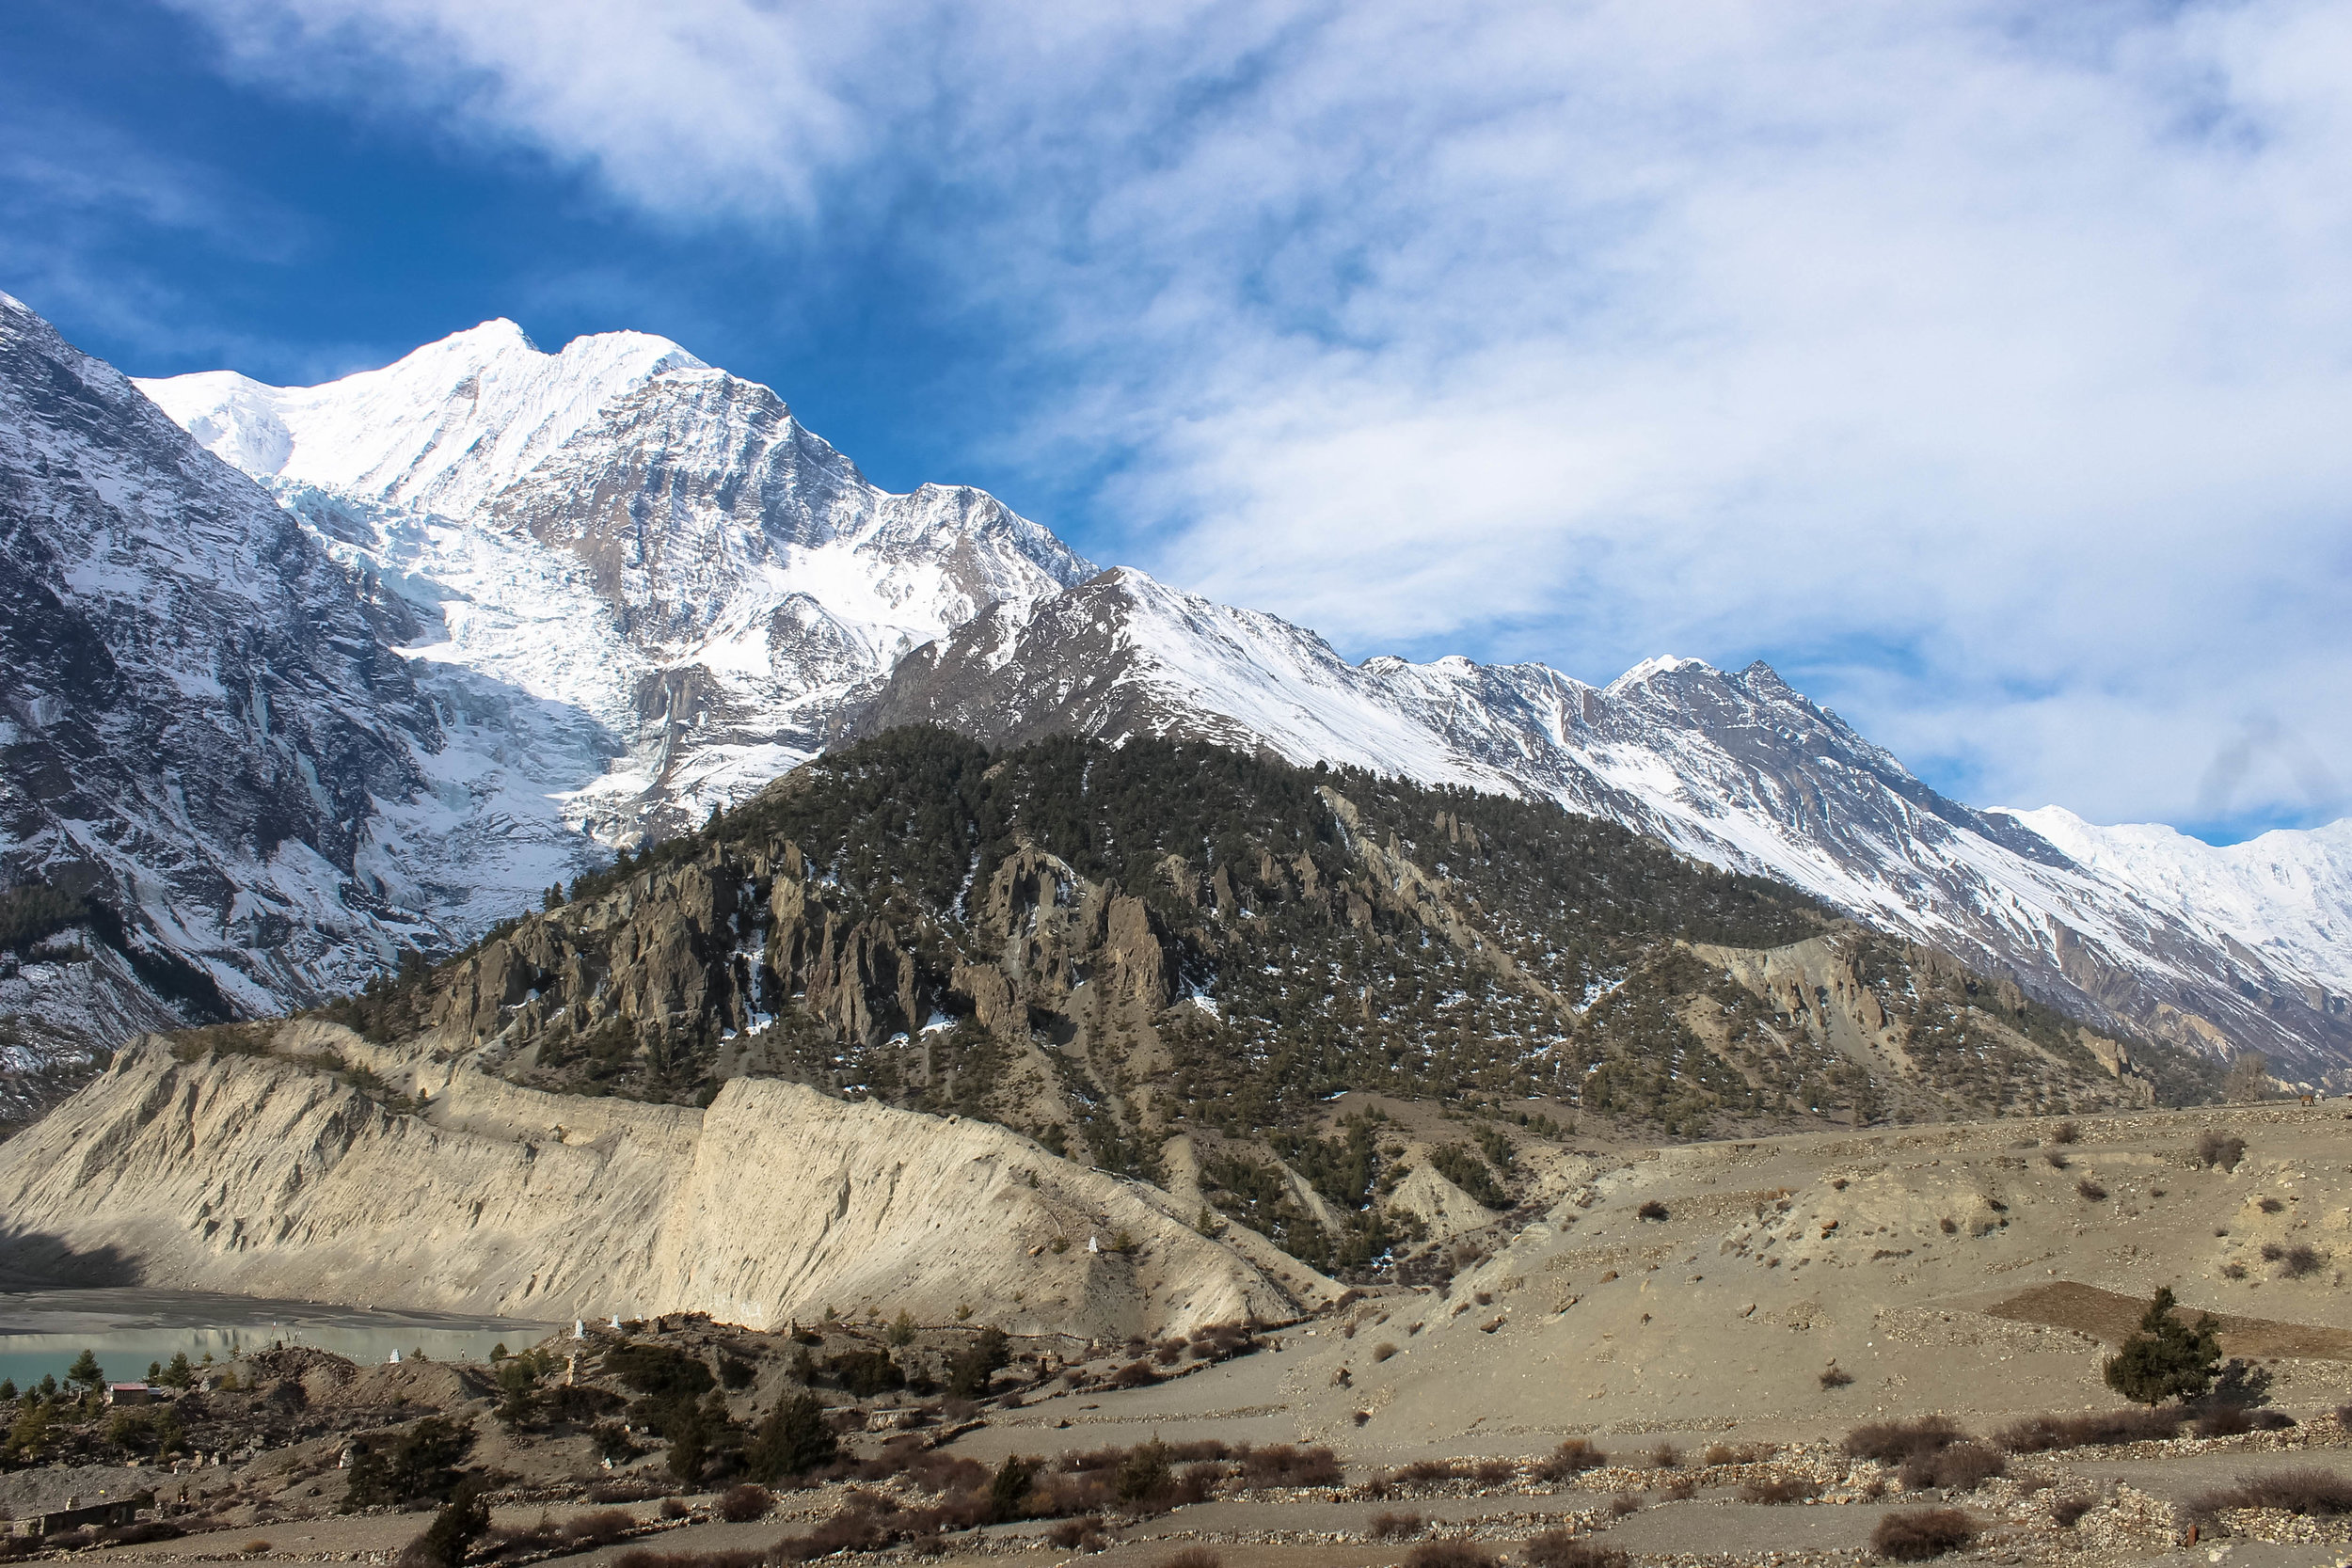 Breathtaking alpine views as the climb gets higher and closer to Thorong La Pass.